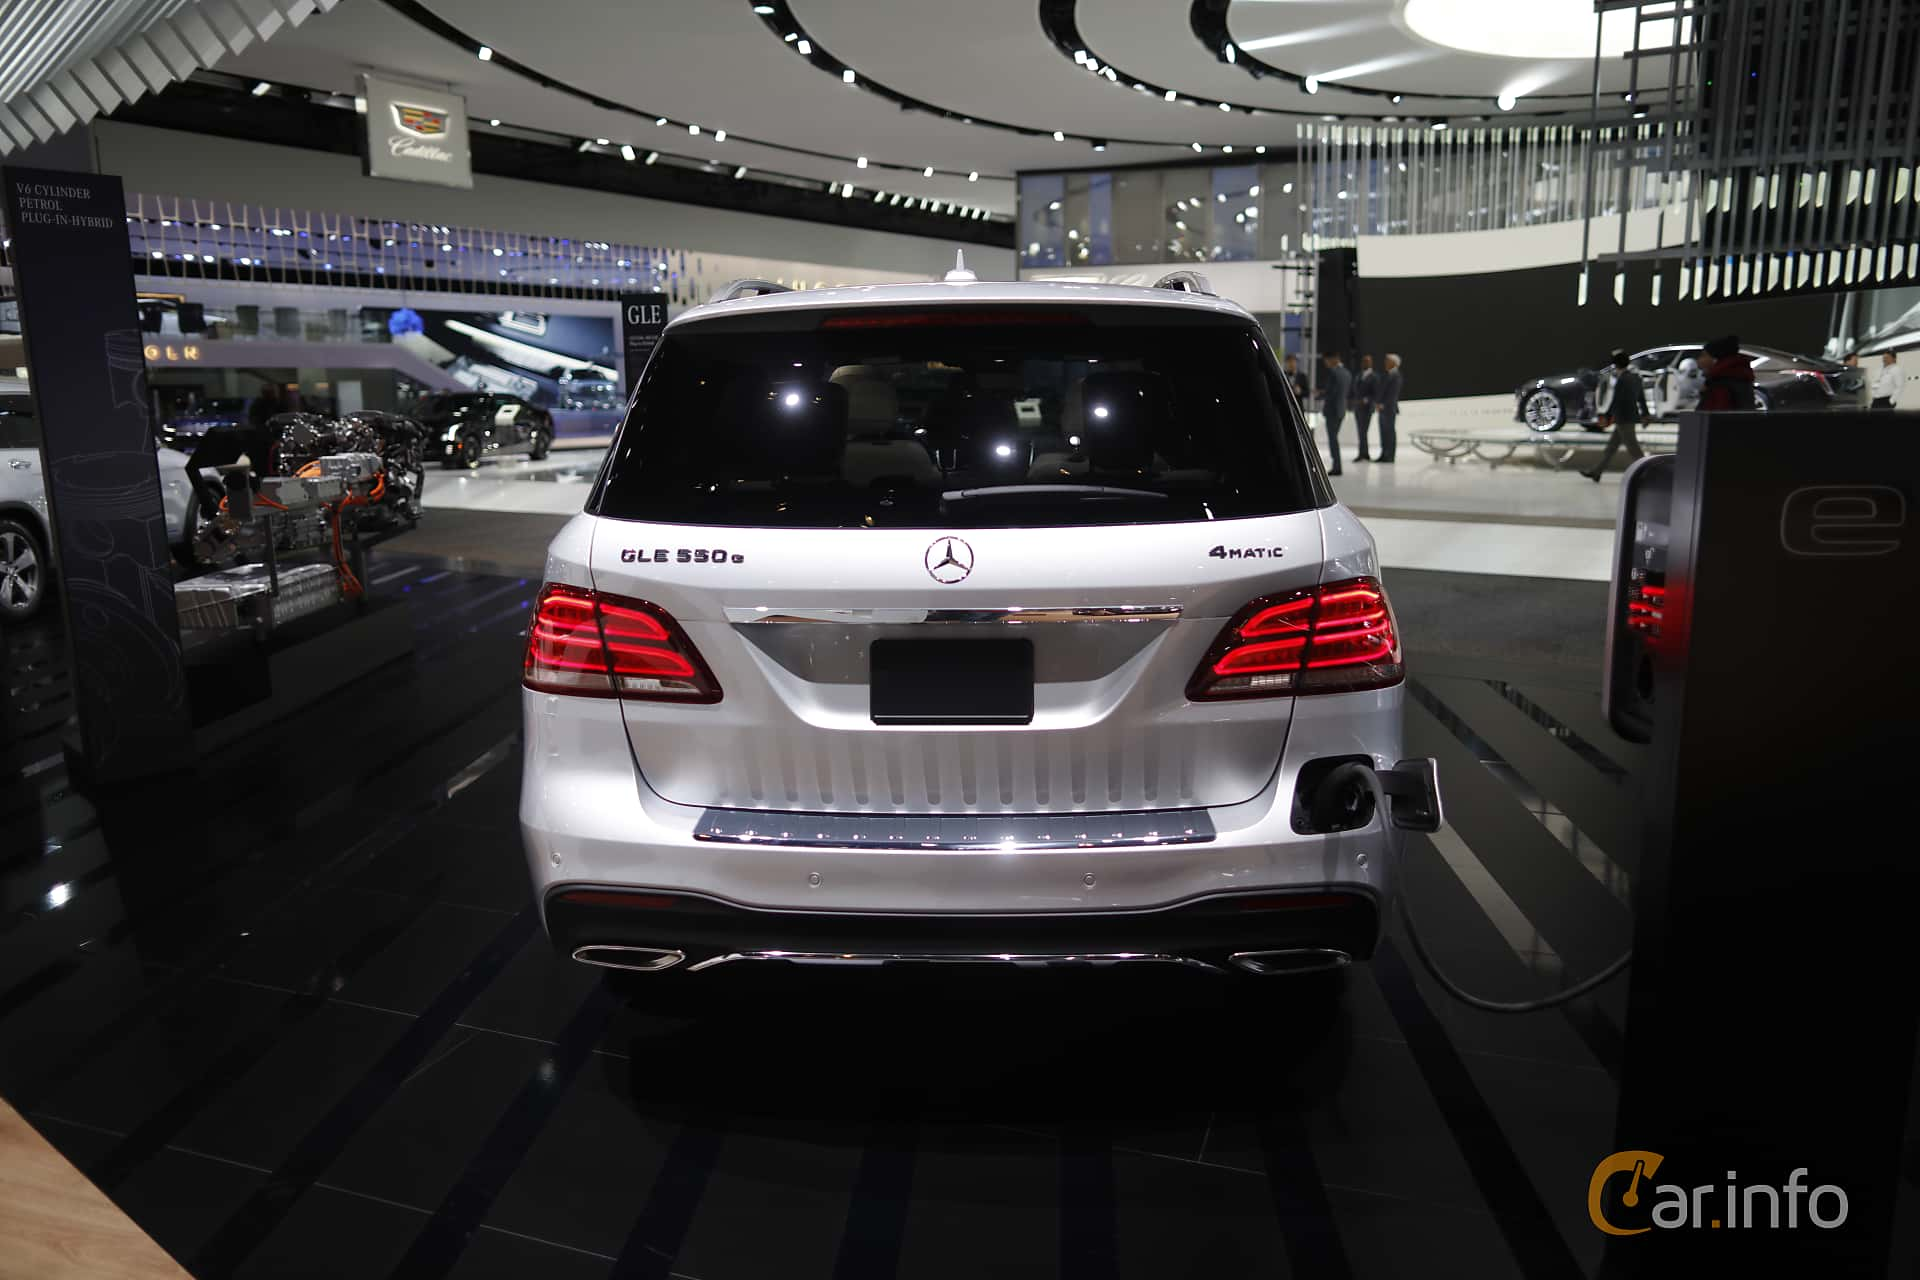 Mercedes-Benz GLE 500 e 4MATIC 3.0 V6 4MATIC 7G-Tronic Plus, 442hp, 2017 at North American International Auto Show 2017